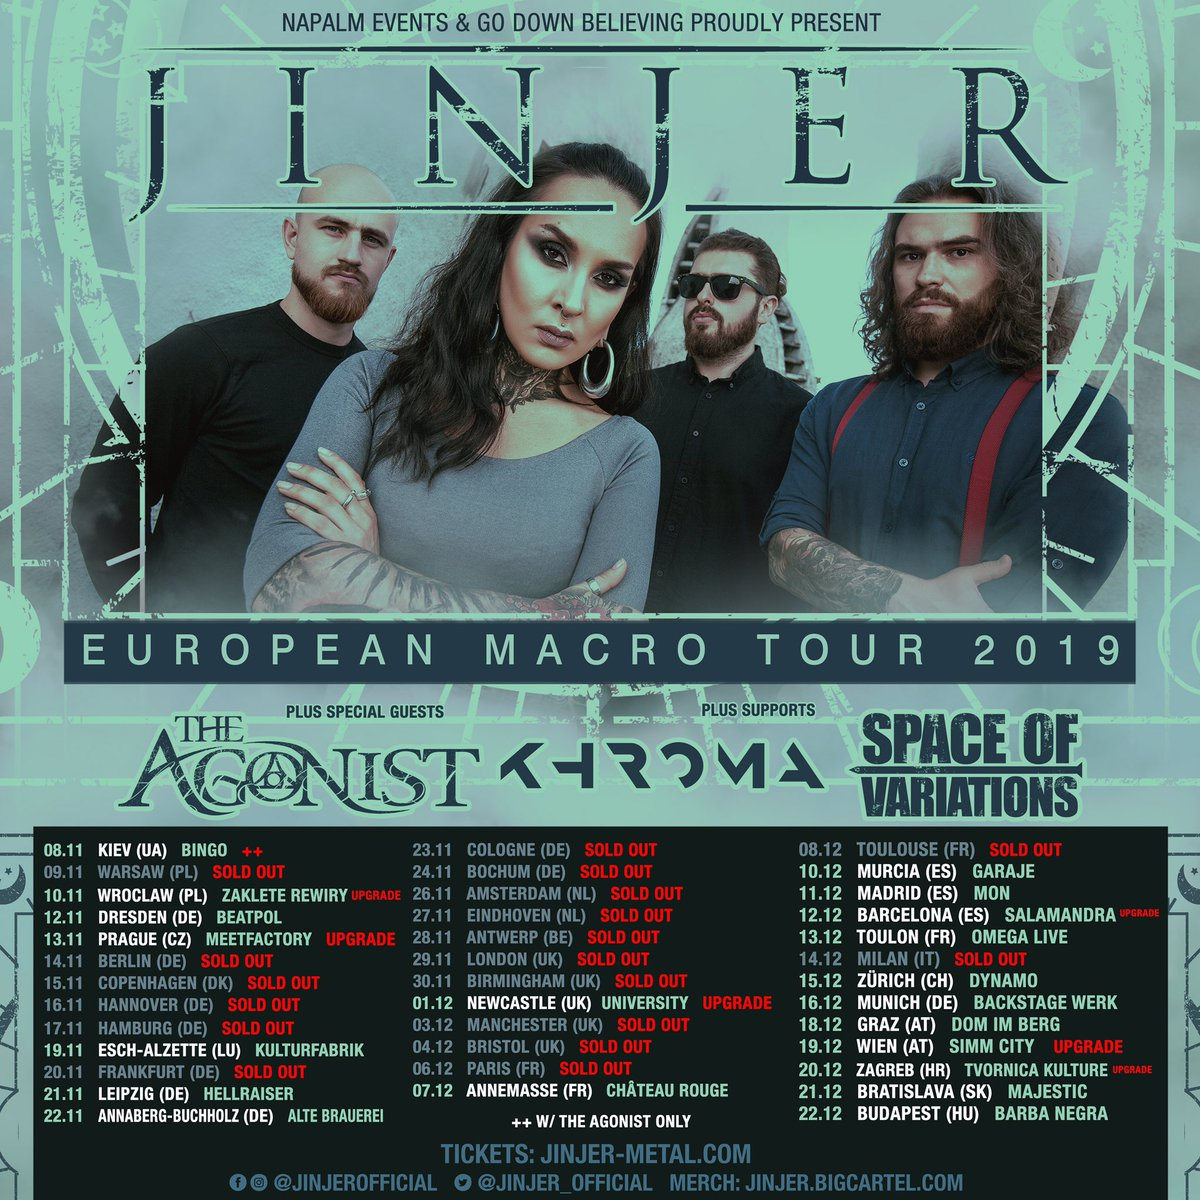 ... and the two supports that will smash Europe together with us and special guests THE AGONIST are Finnish bruisers KHROMA and our brothers SPACE OF VARIATIONS! ALSO: Toulouse is SOLD OUT and Wroclaw and Barcelona have been upgraded to bigger venues! <br>http://pic.twitter.com/HMqgHfTlWH